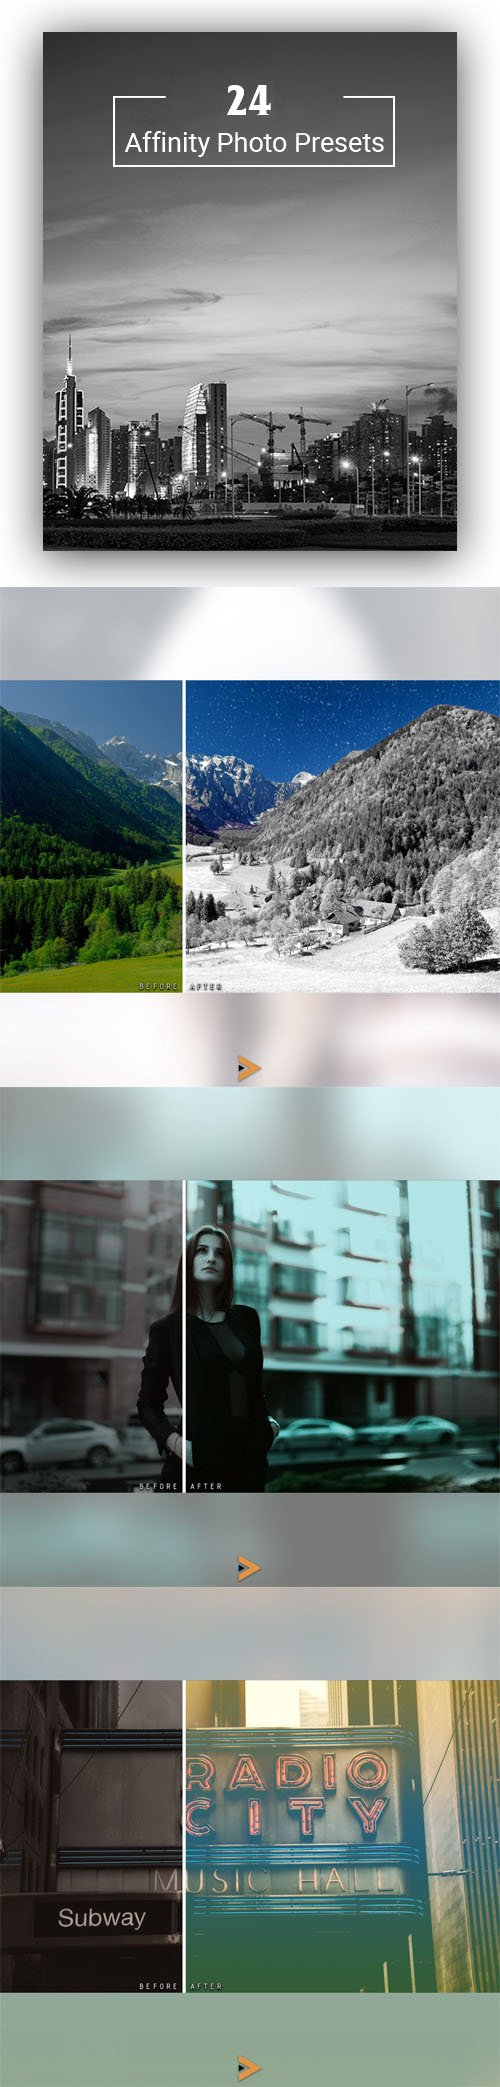 24 Affinity Photo Presets with 5 Categories